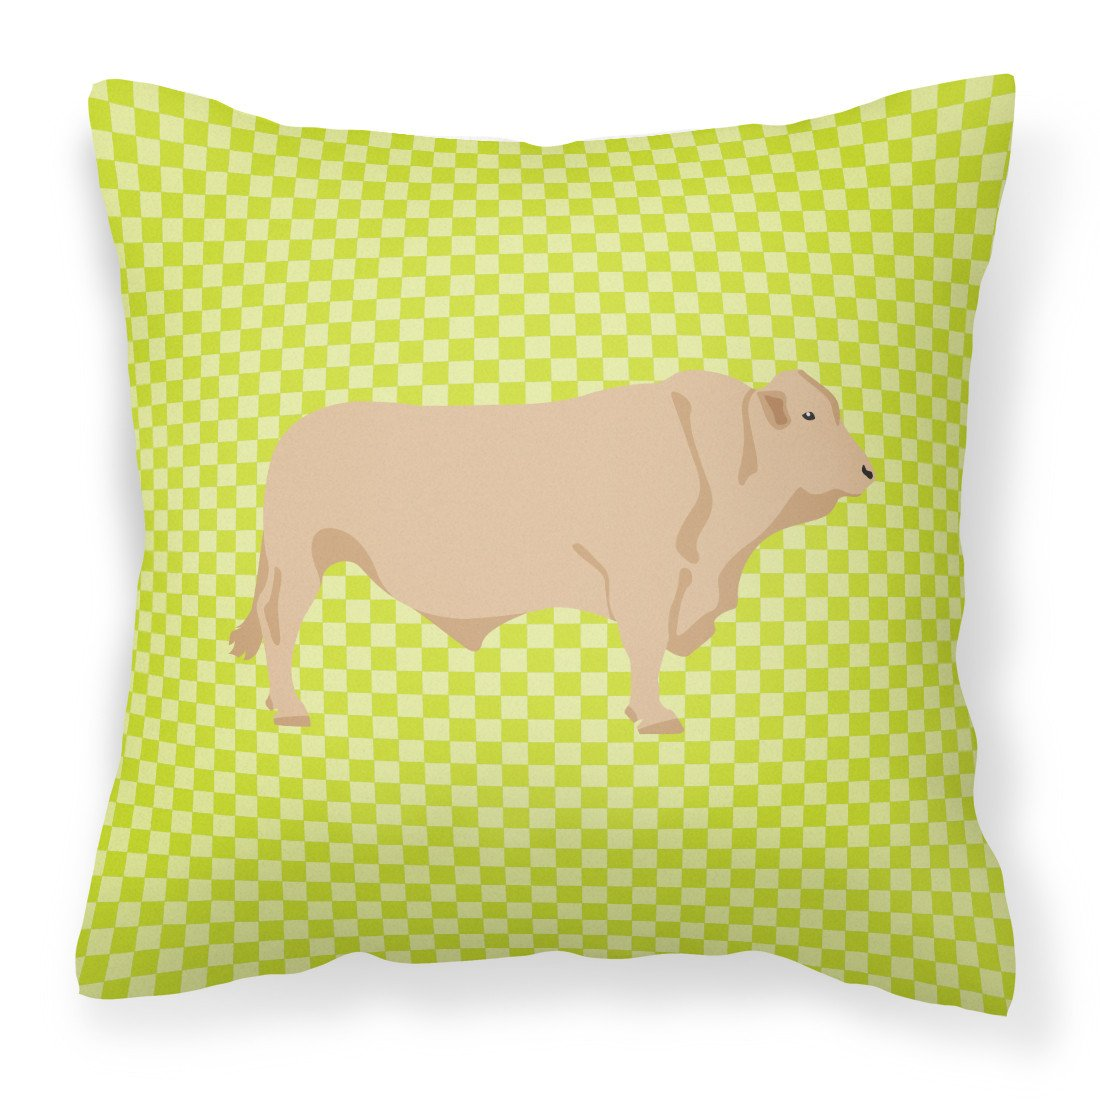 Charolais Cow Green Fabric Decorative Pillow BB7652PW1818 by Caroline's Treasures